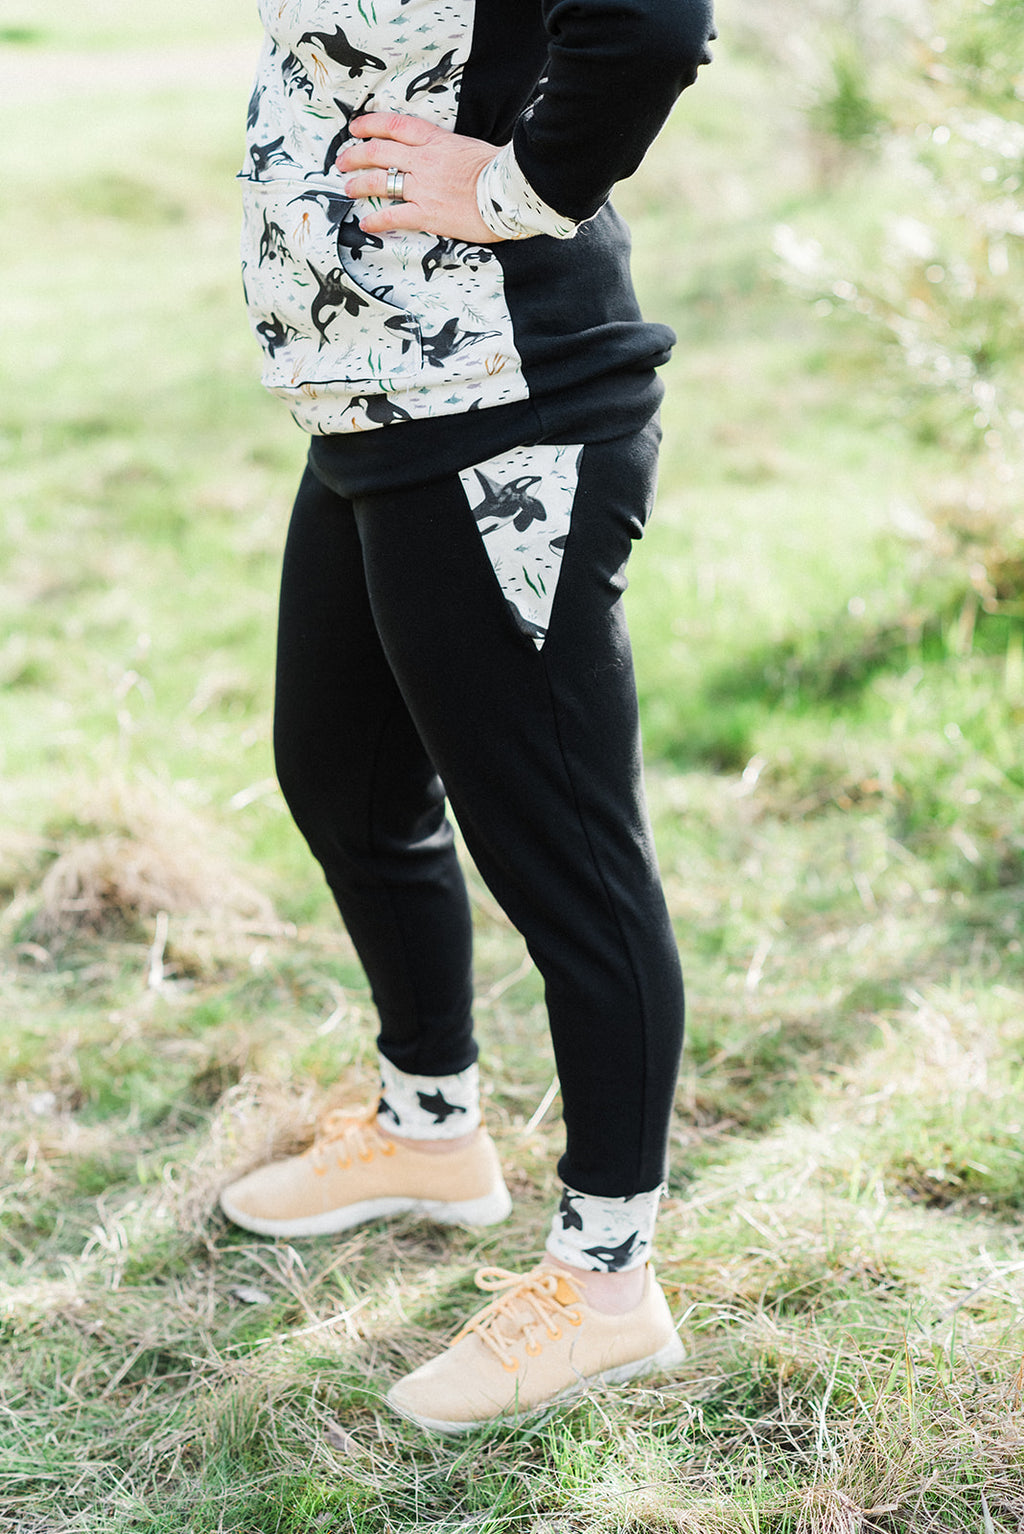 Women's Birds and Orca Whales Cotton Joggers